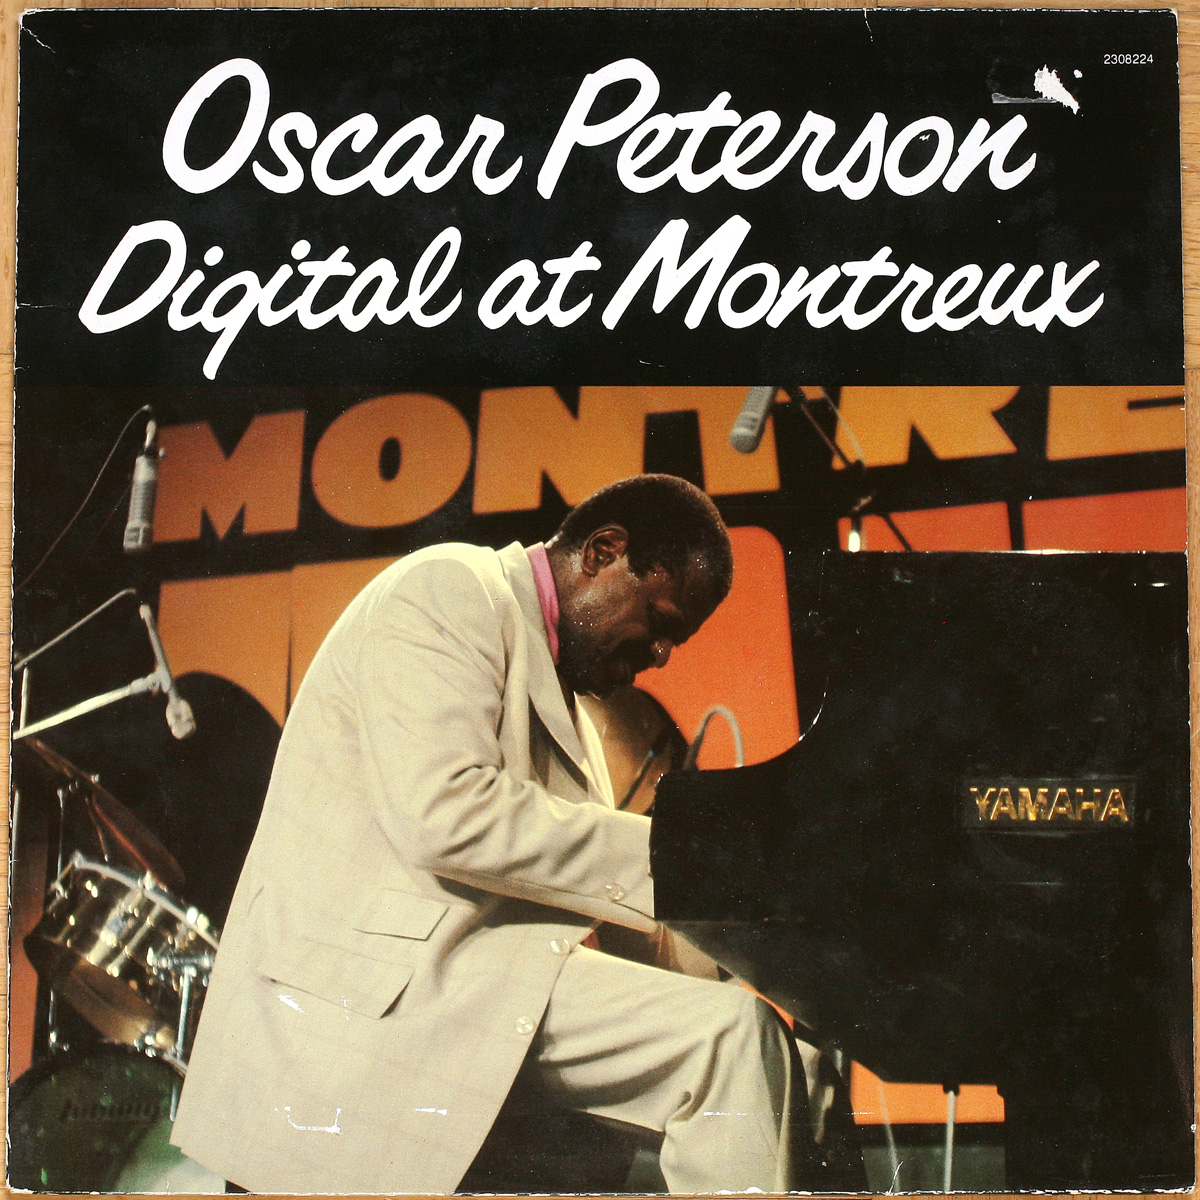 Oscar Peterson Digital At Montreux